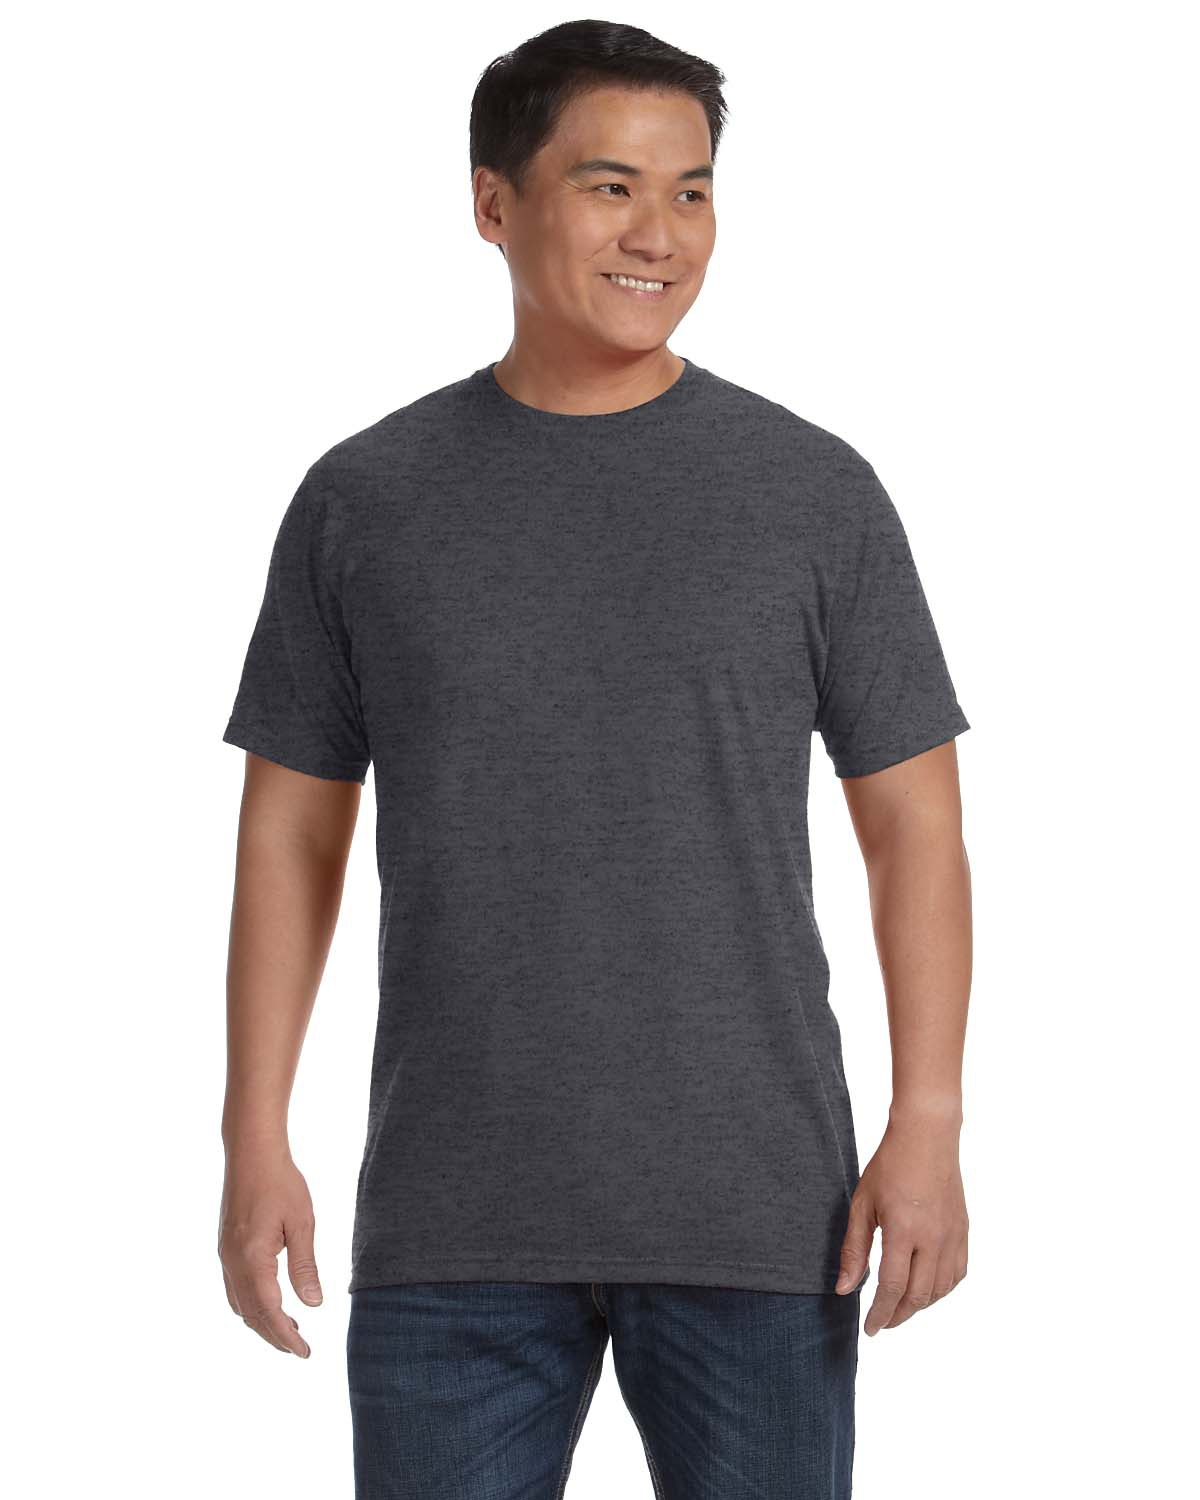 3f58bfec77d Anvil 749 Long-Sleeve T-Shirt with TearAway Label  6.77 - Men s T-Shirts